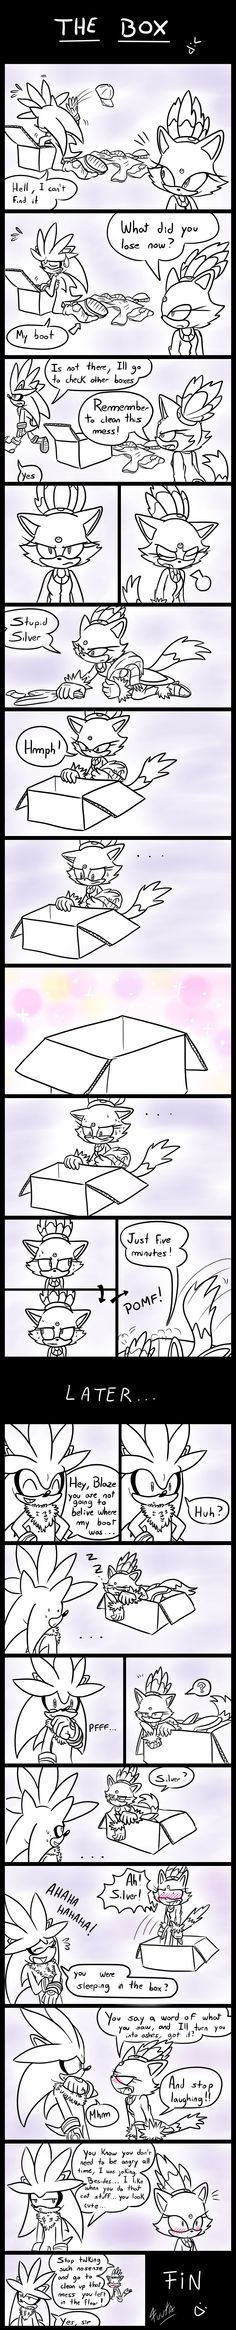 The Box - (A Silver and Blaze Comic) by Fuutachimaru on deviantART LOL X3 <3 <3